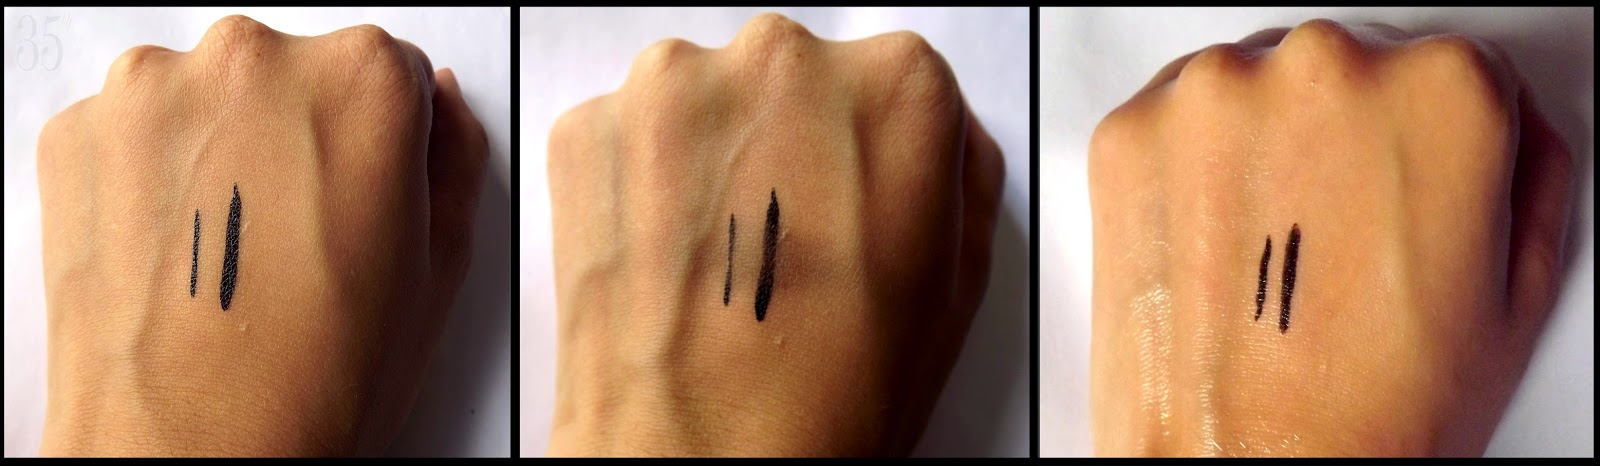 Landbis Hyper Sharp Intense Black Liner swatch